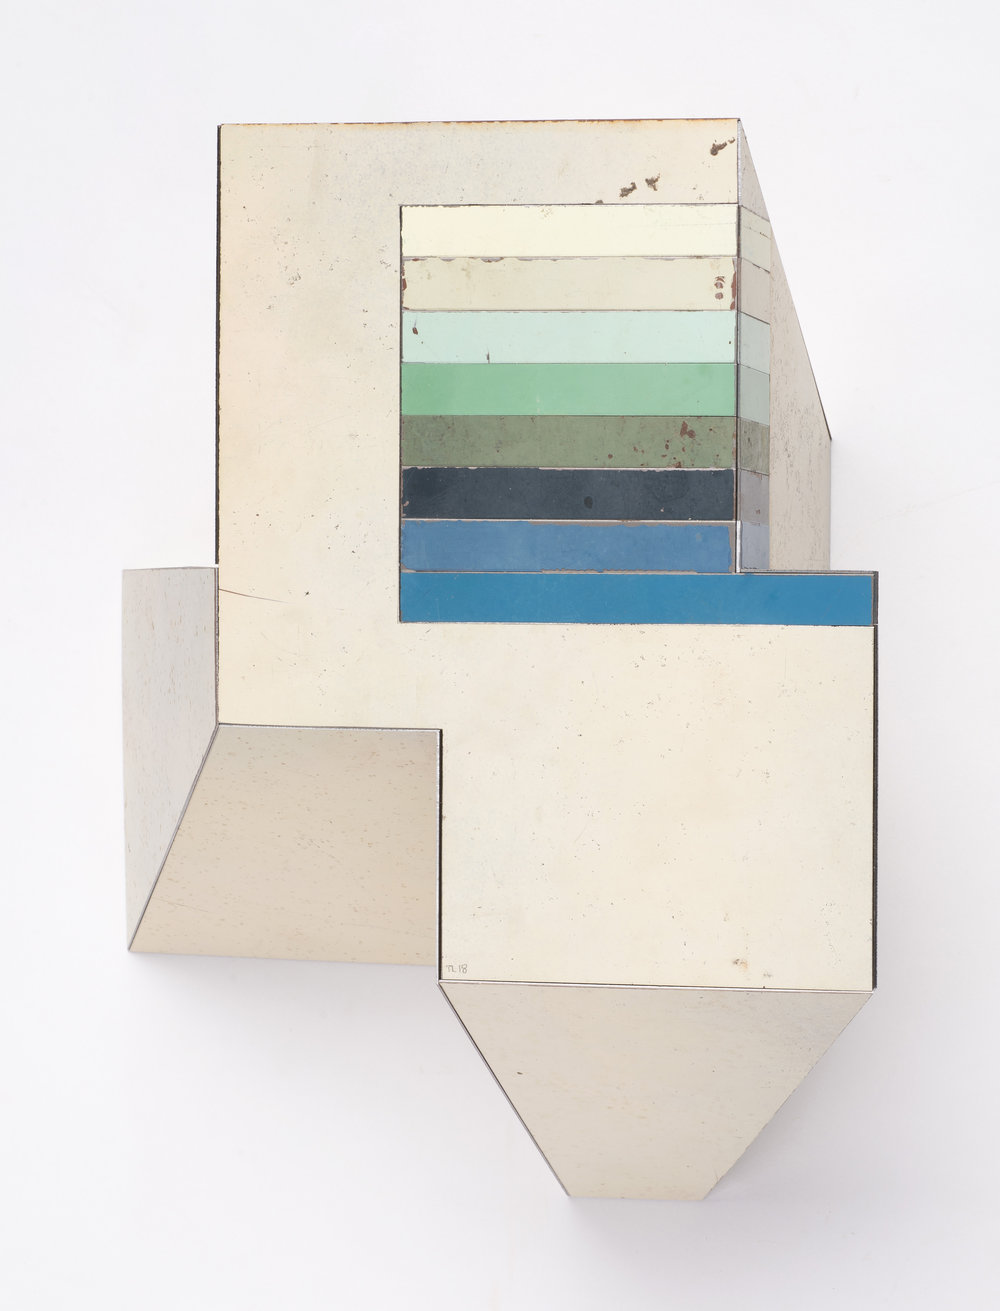 Straight Angle, 11.5 x 10 x 5 inches / 29.2 x 25.4 x 12.7 cm, salvage steel, marine-grade plywood, silicone, vulcanized rubber, hardware, 2018